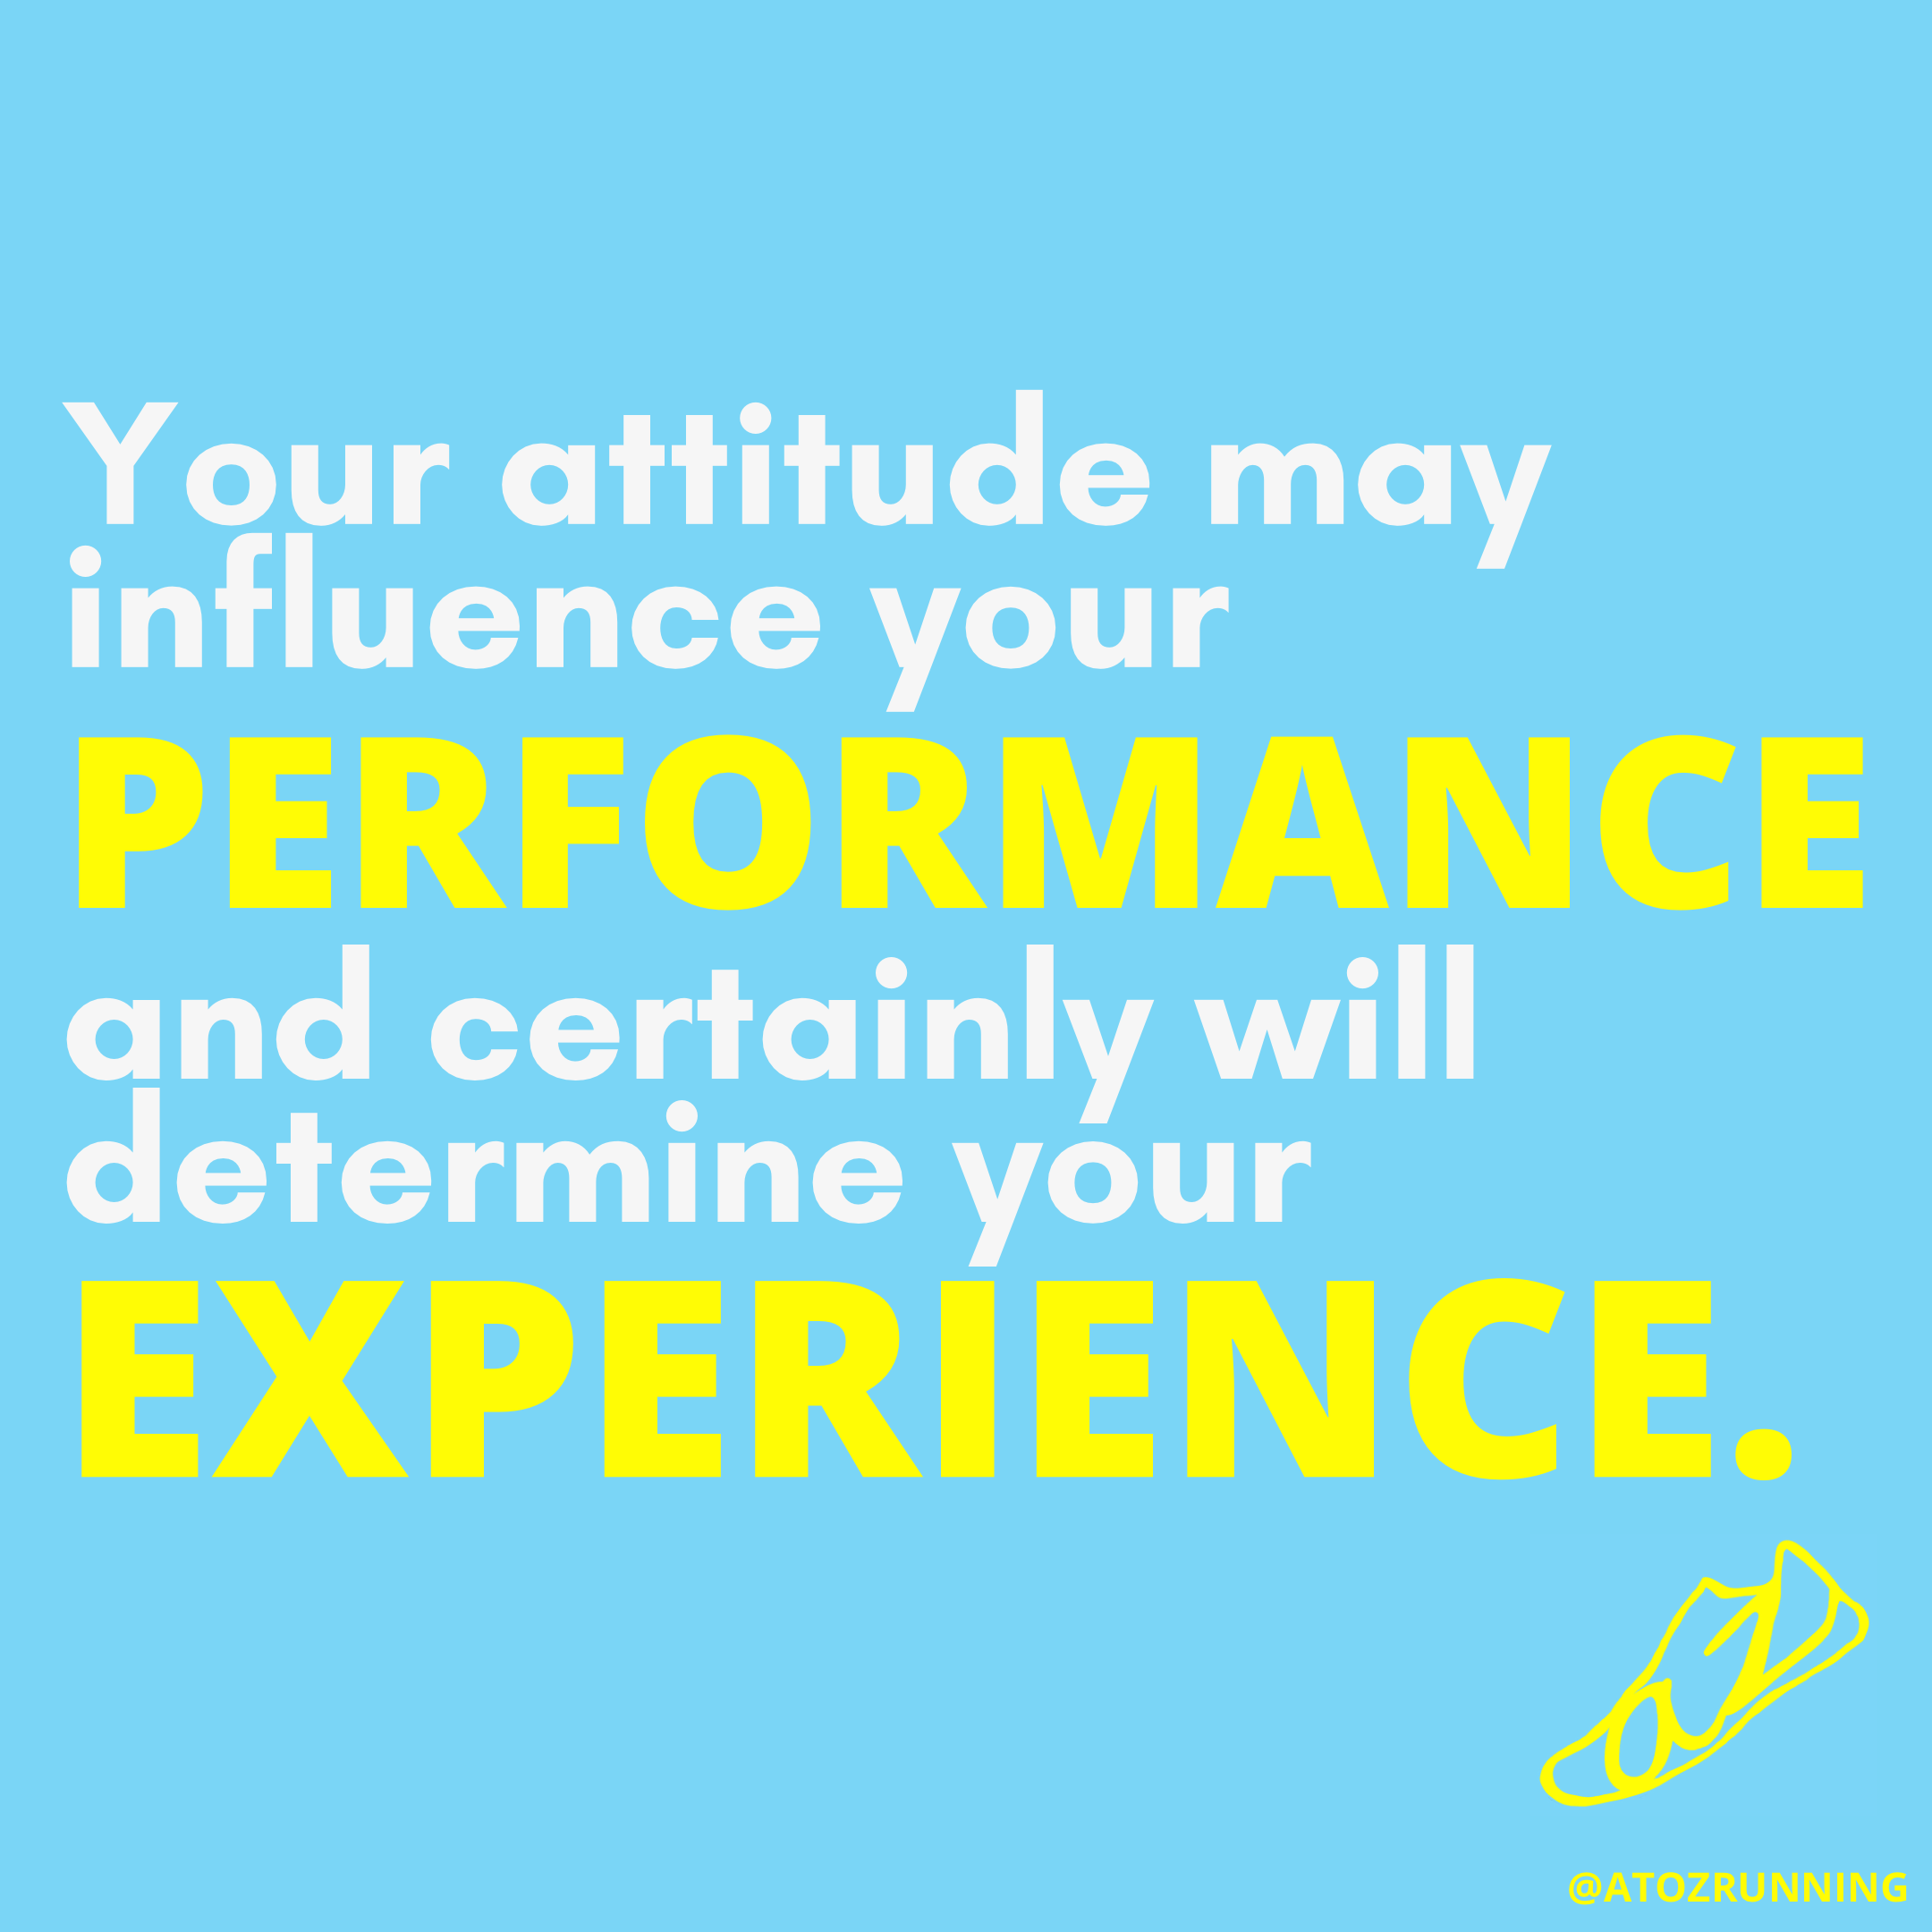 Running quote. Your attitude may influence your performance and certainly will determine your experience.